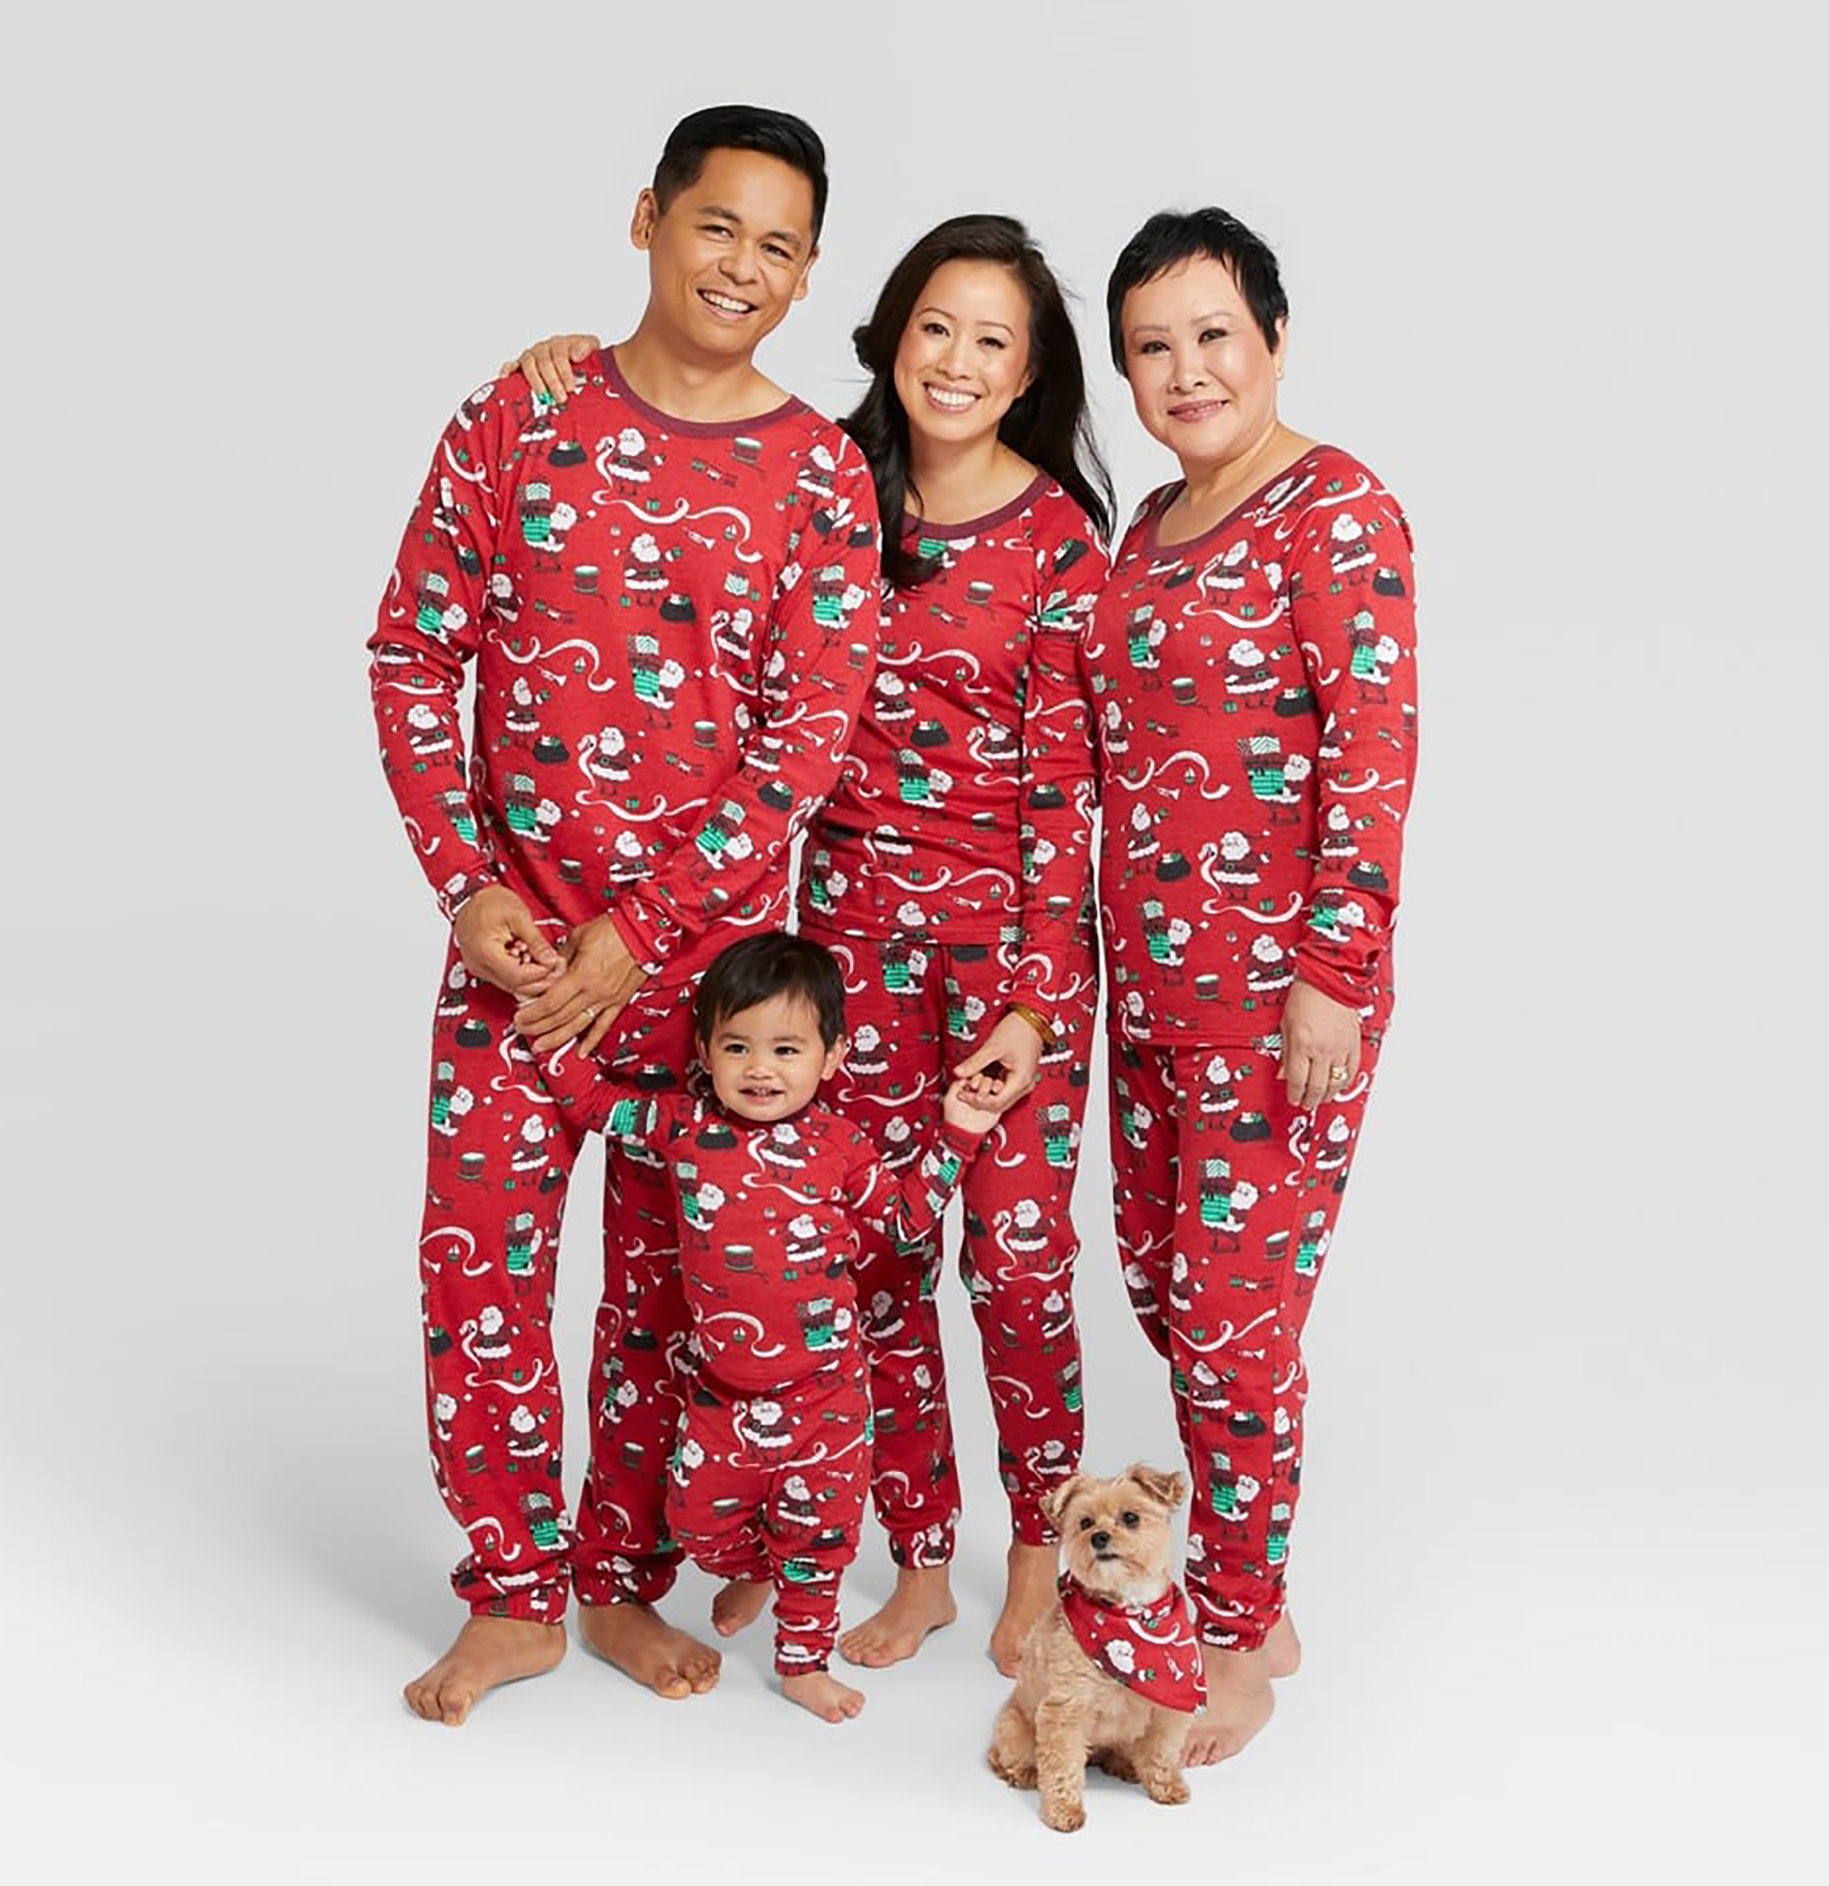 f12b69c2c Nite Nite Munki Munki Holiday Santa's List Family Pajamas Collection